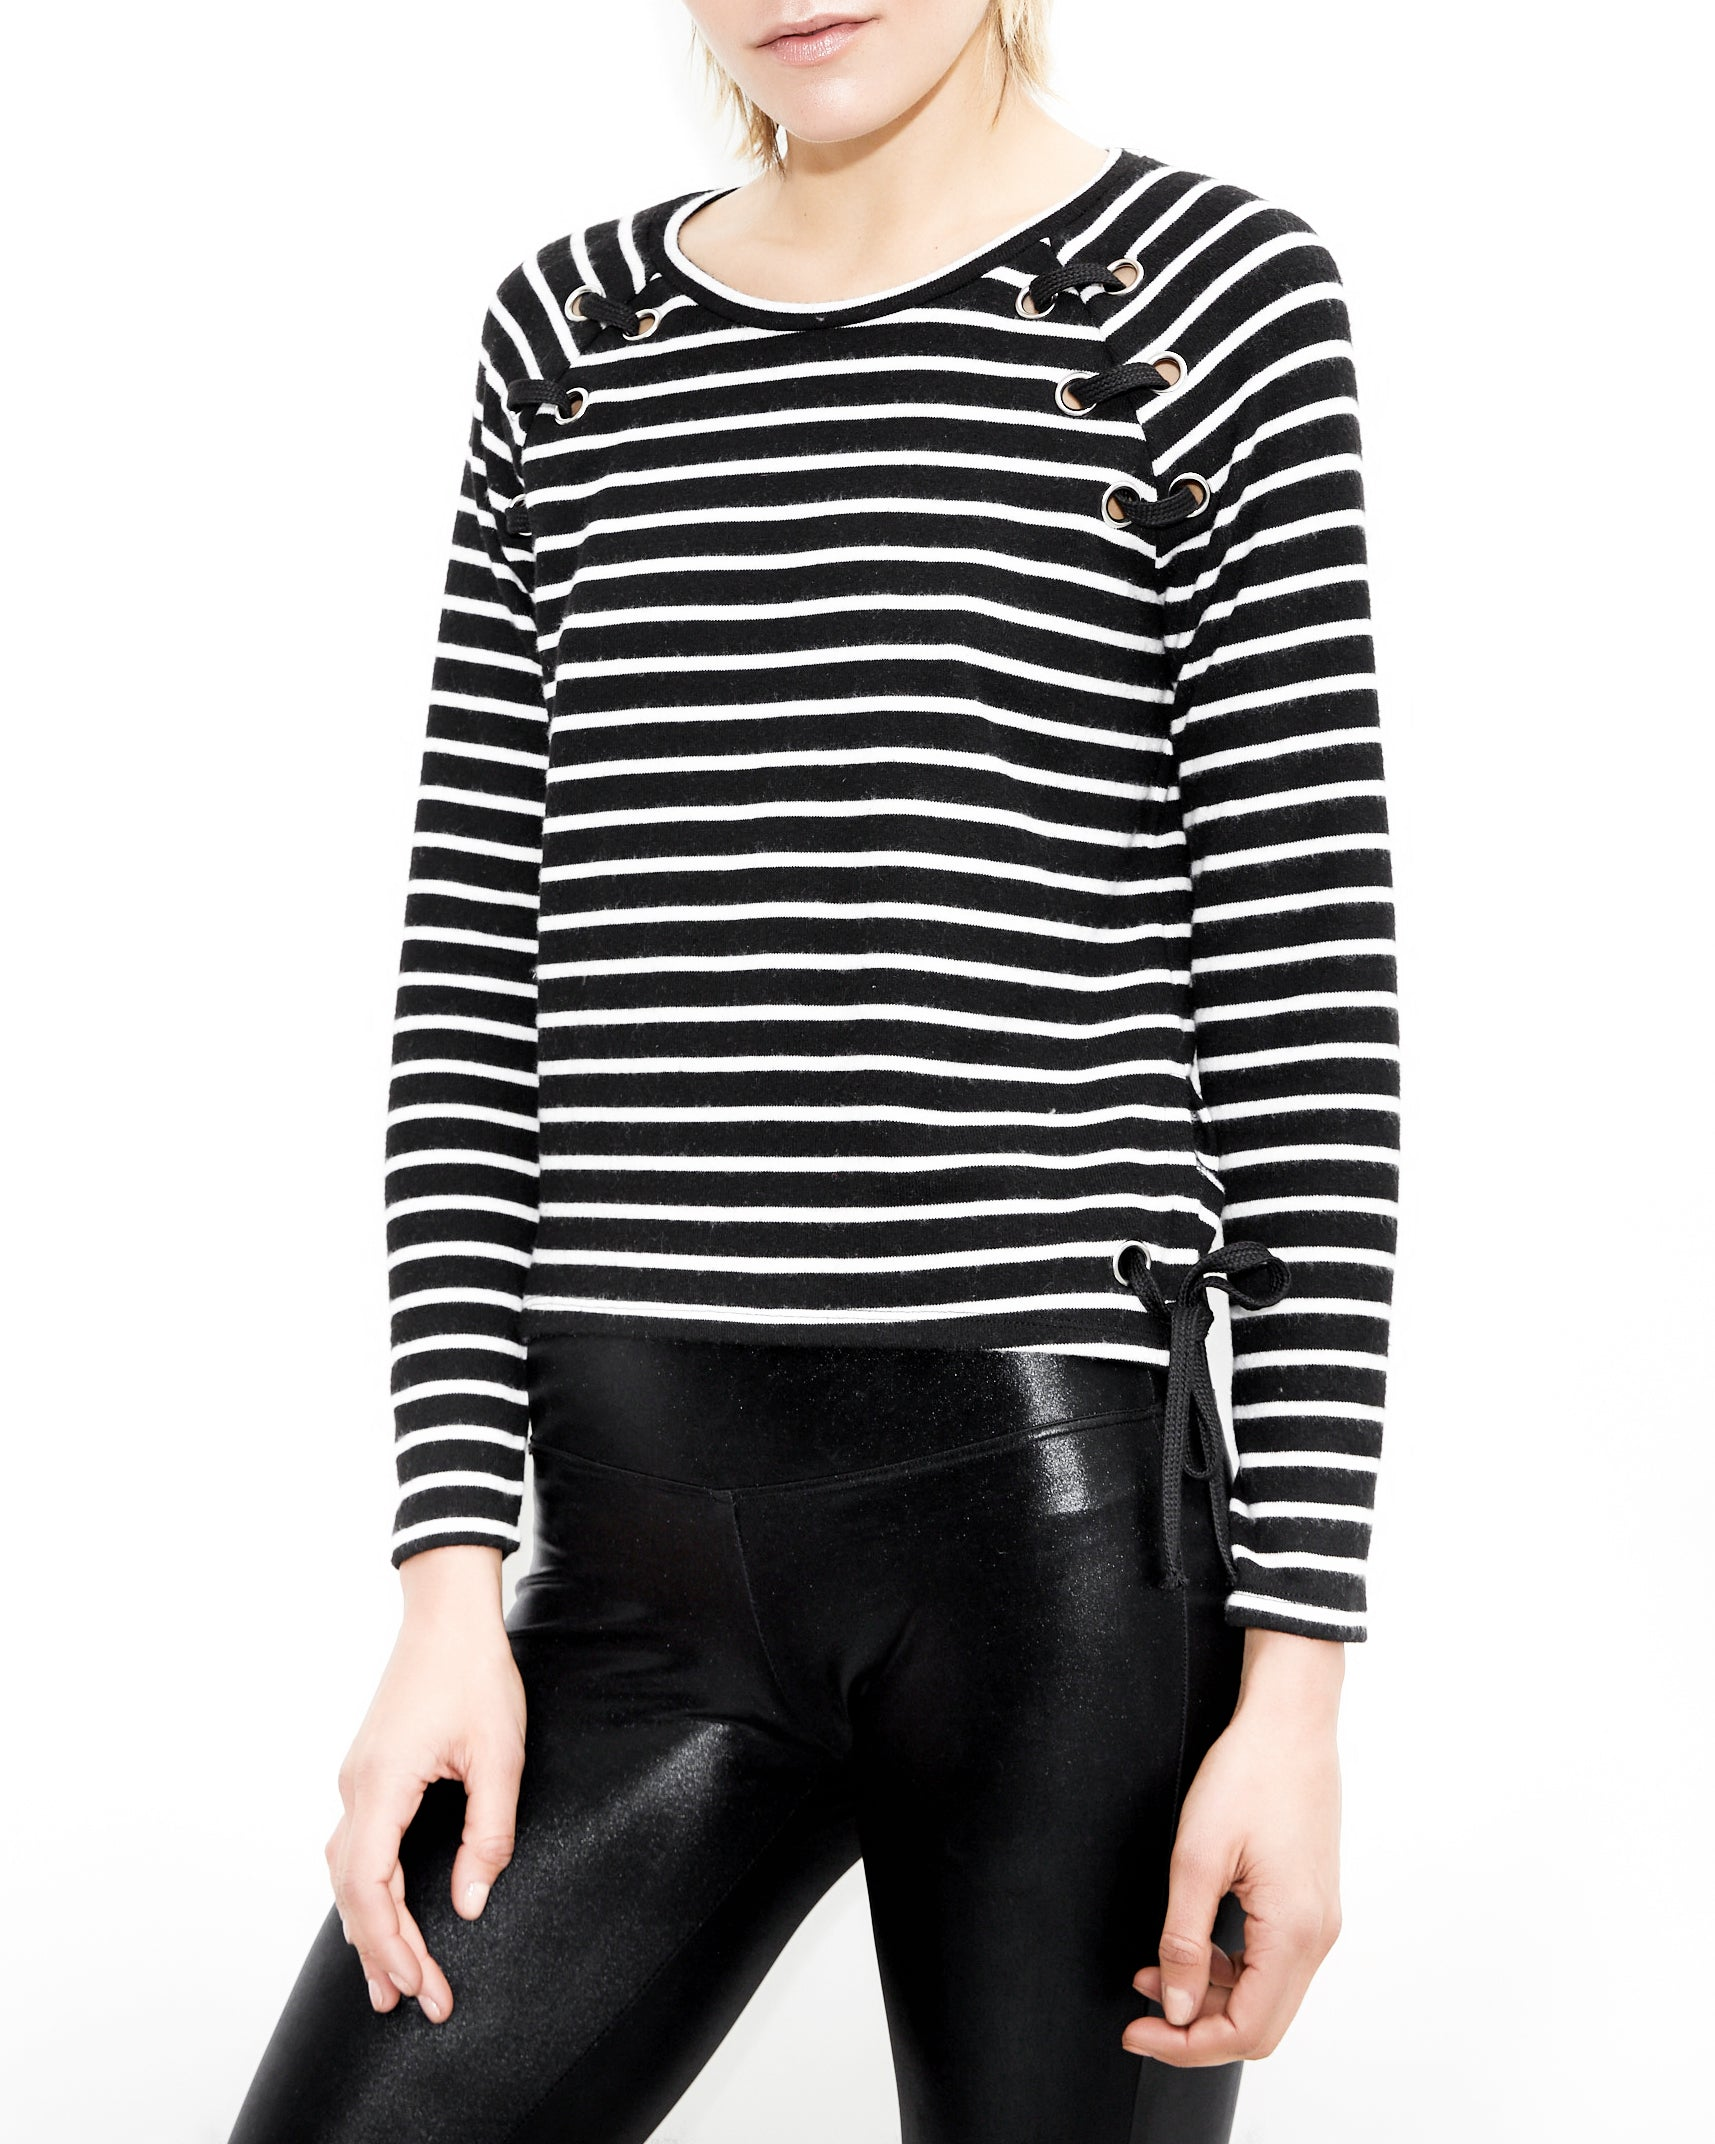 Kath Eyelets Striped Top. Generation Love. NYC Modern Women's Clothing